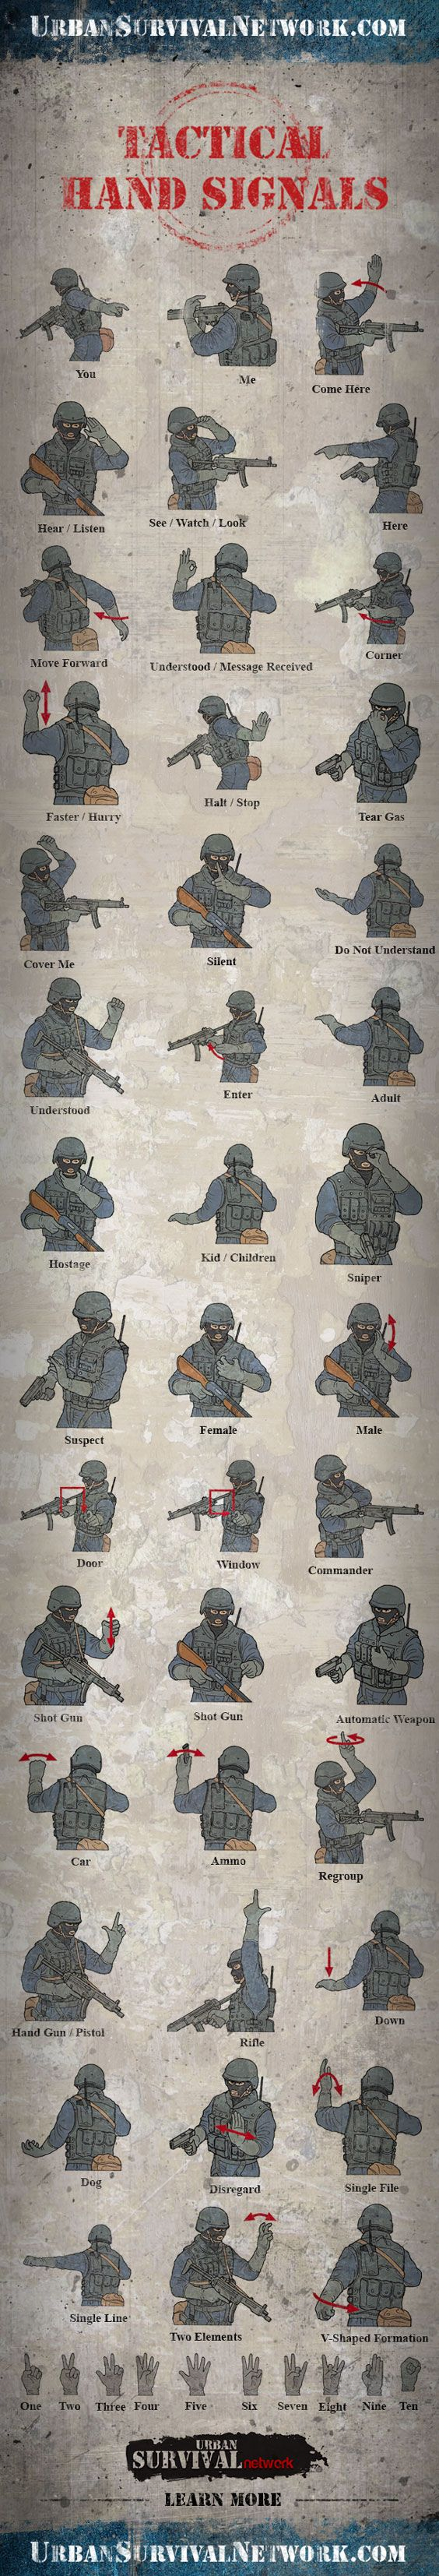 Tactical Hand Signals, this would be good to know for paintballing!: